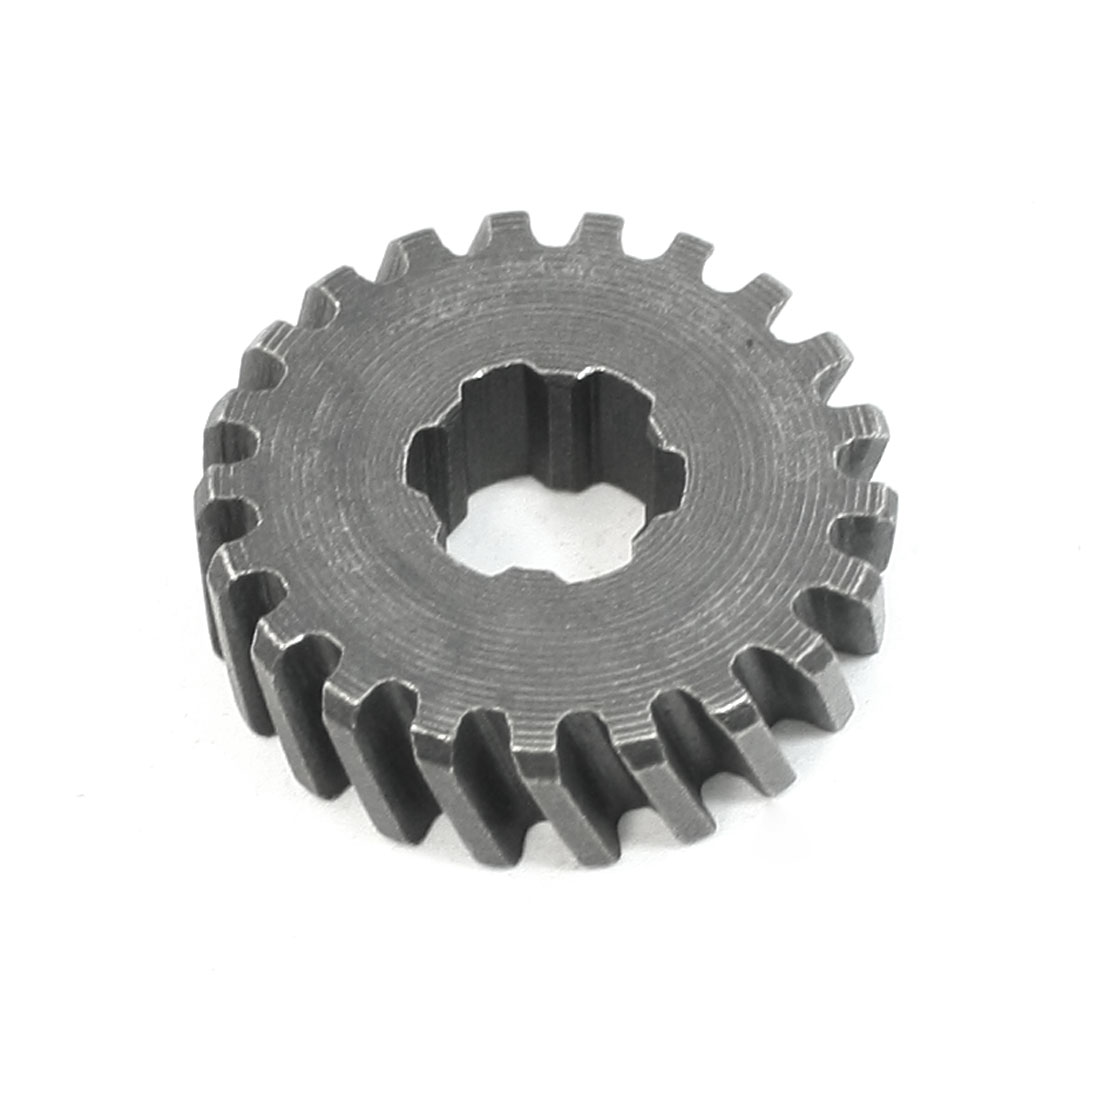 Power Tool Replacement Part Gear Wheel 21T for Bosch 11210 Rotary Hammer